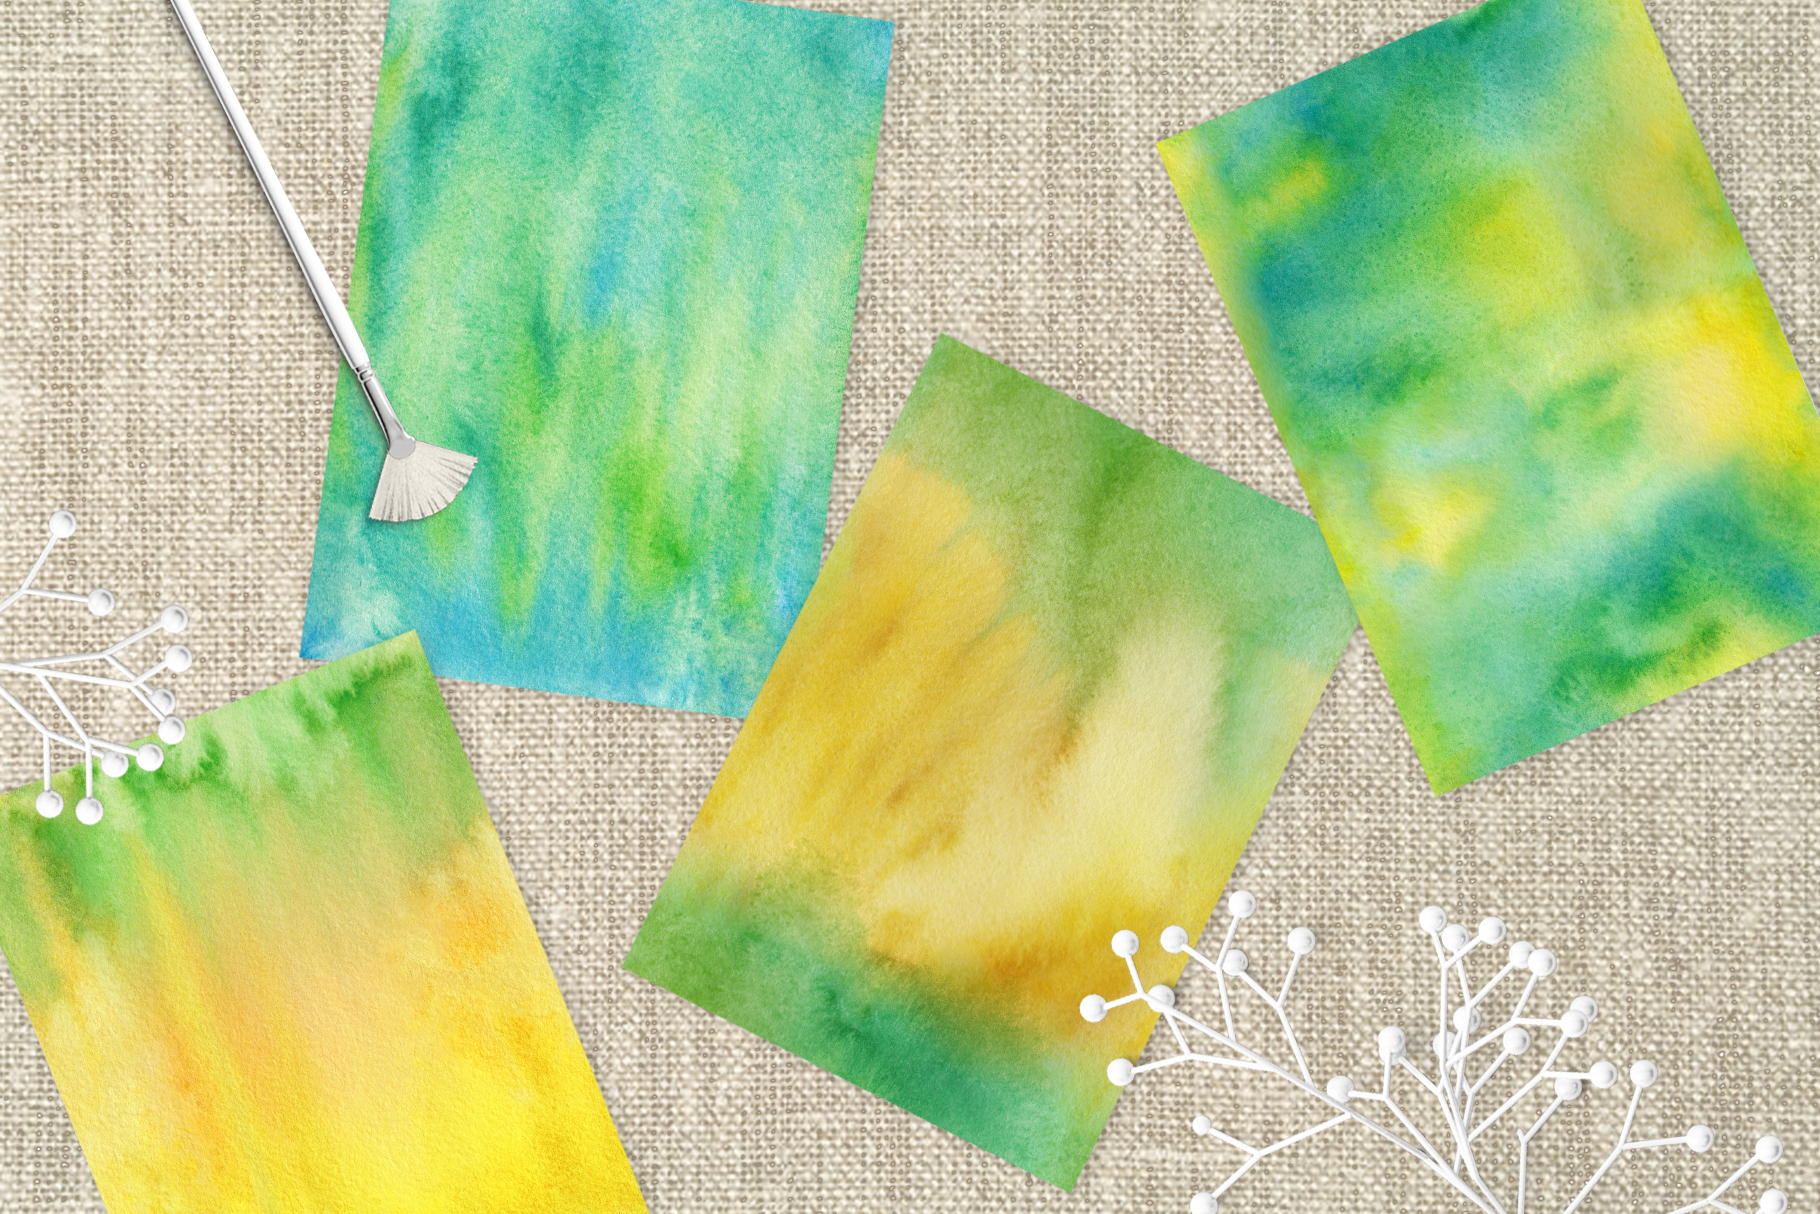 Watercolor Hand Drawn Seamless Textures example image 5